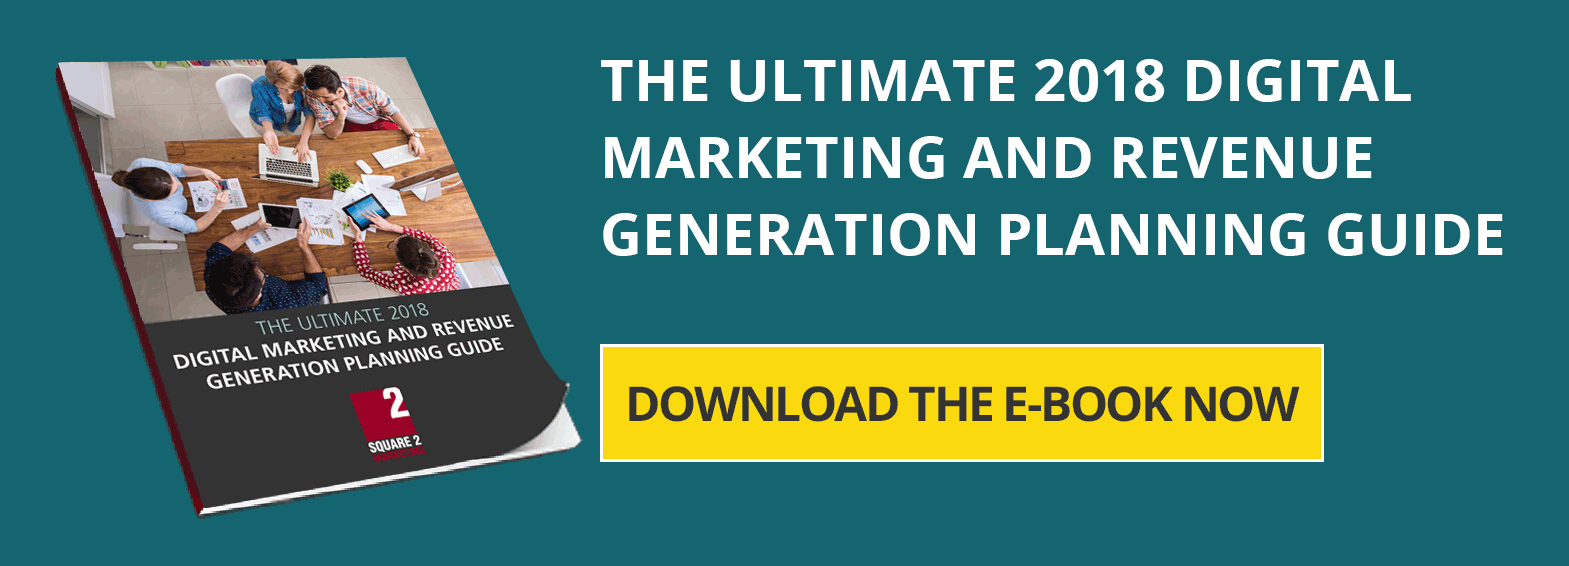 The Ultimate 2018 Digital Marketing And Revenue Generation Planning Guide